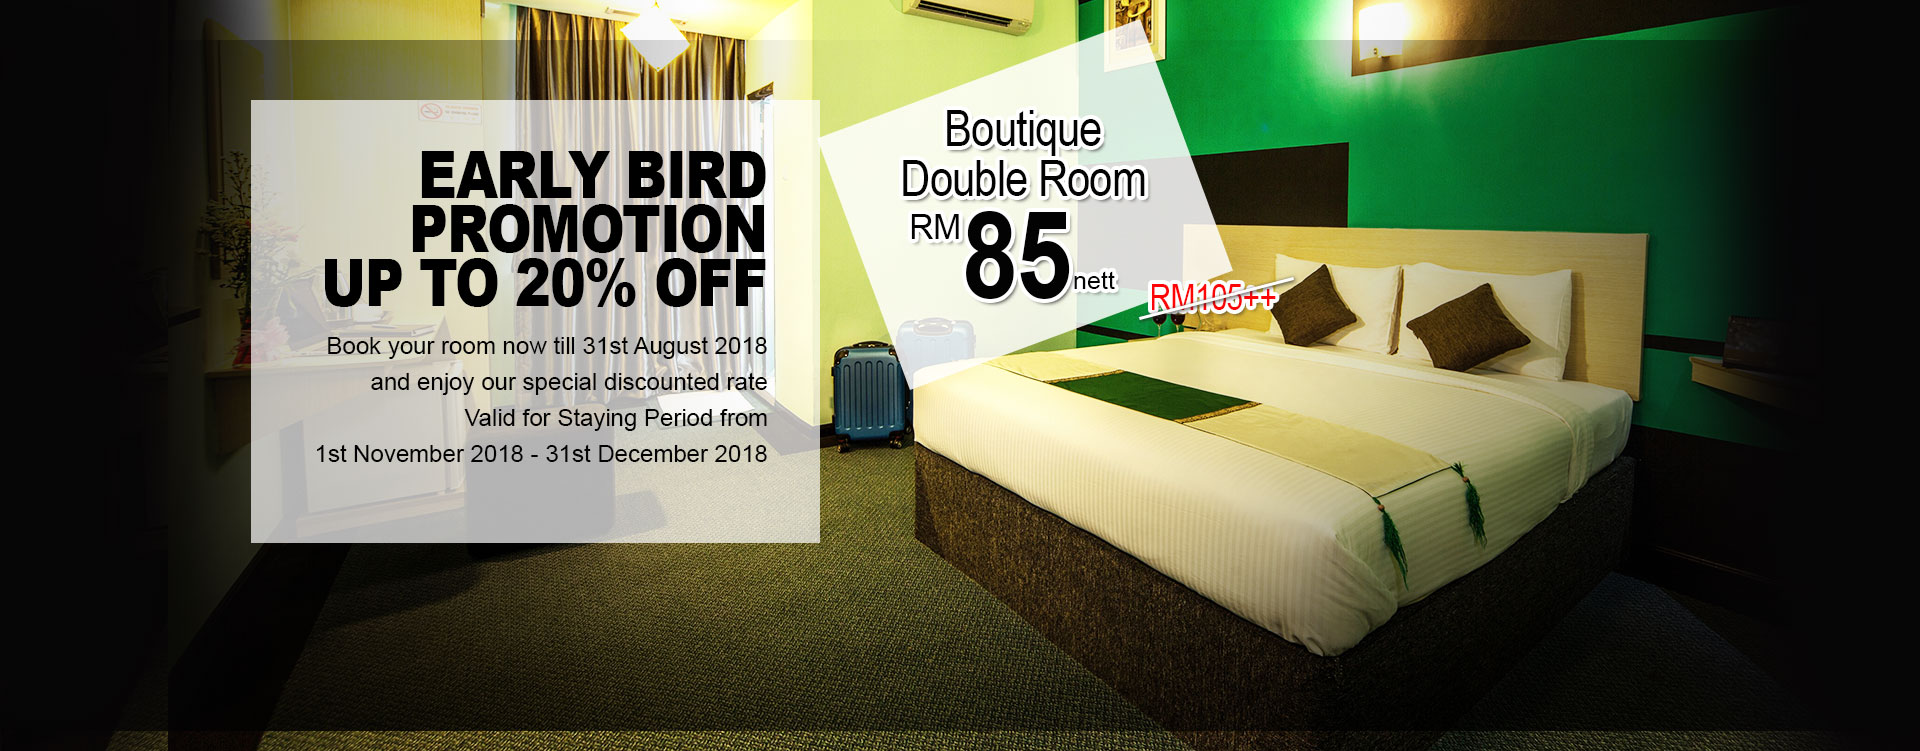 EARLY BIRD PROMOTION UP TO 20% OFF